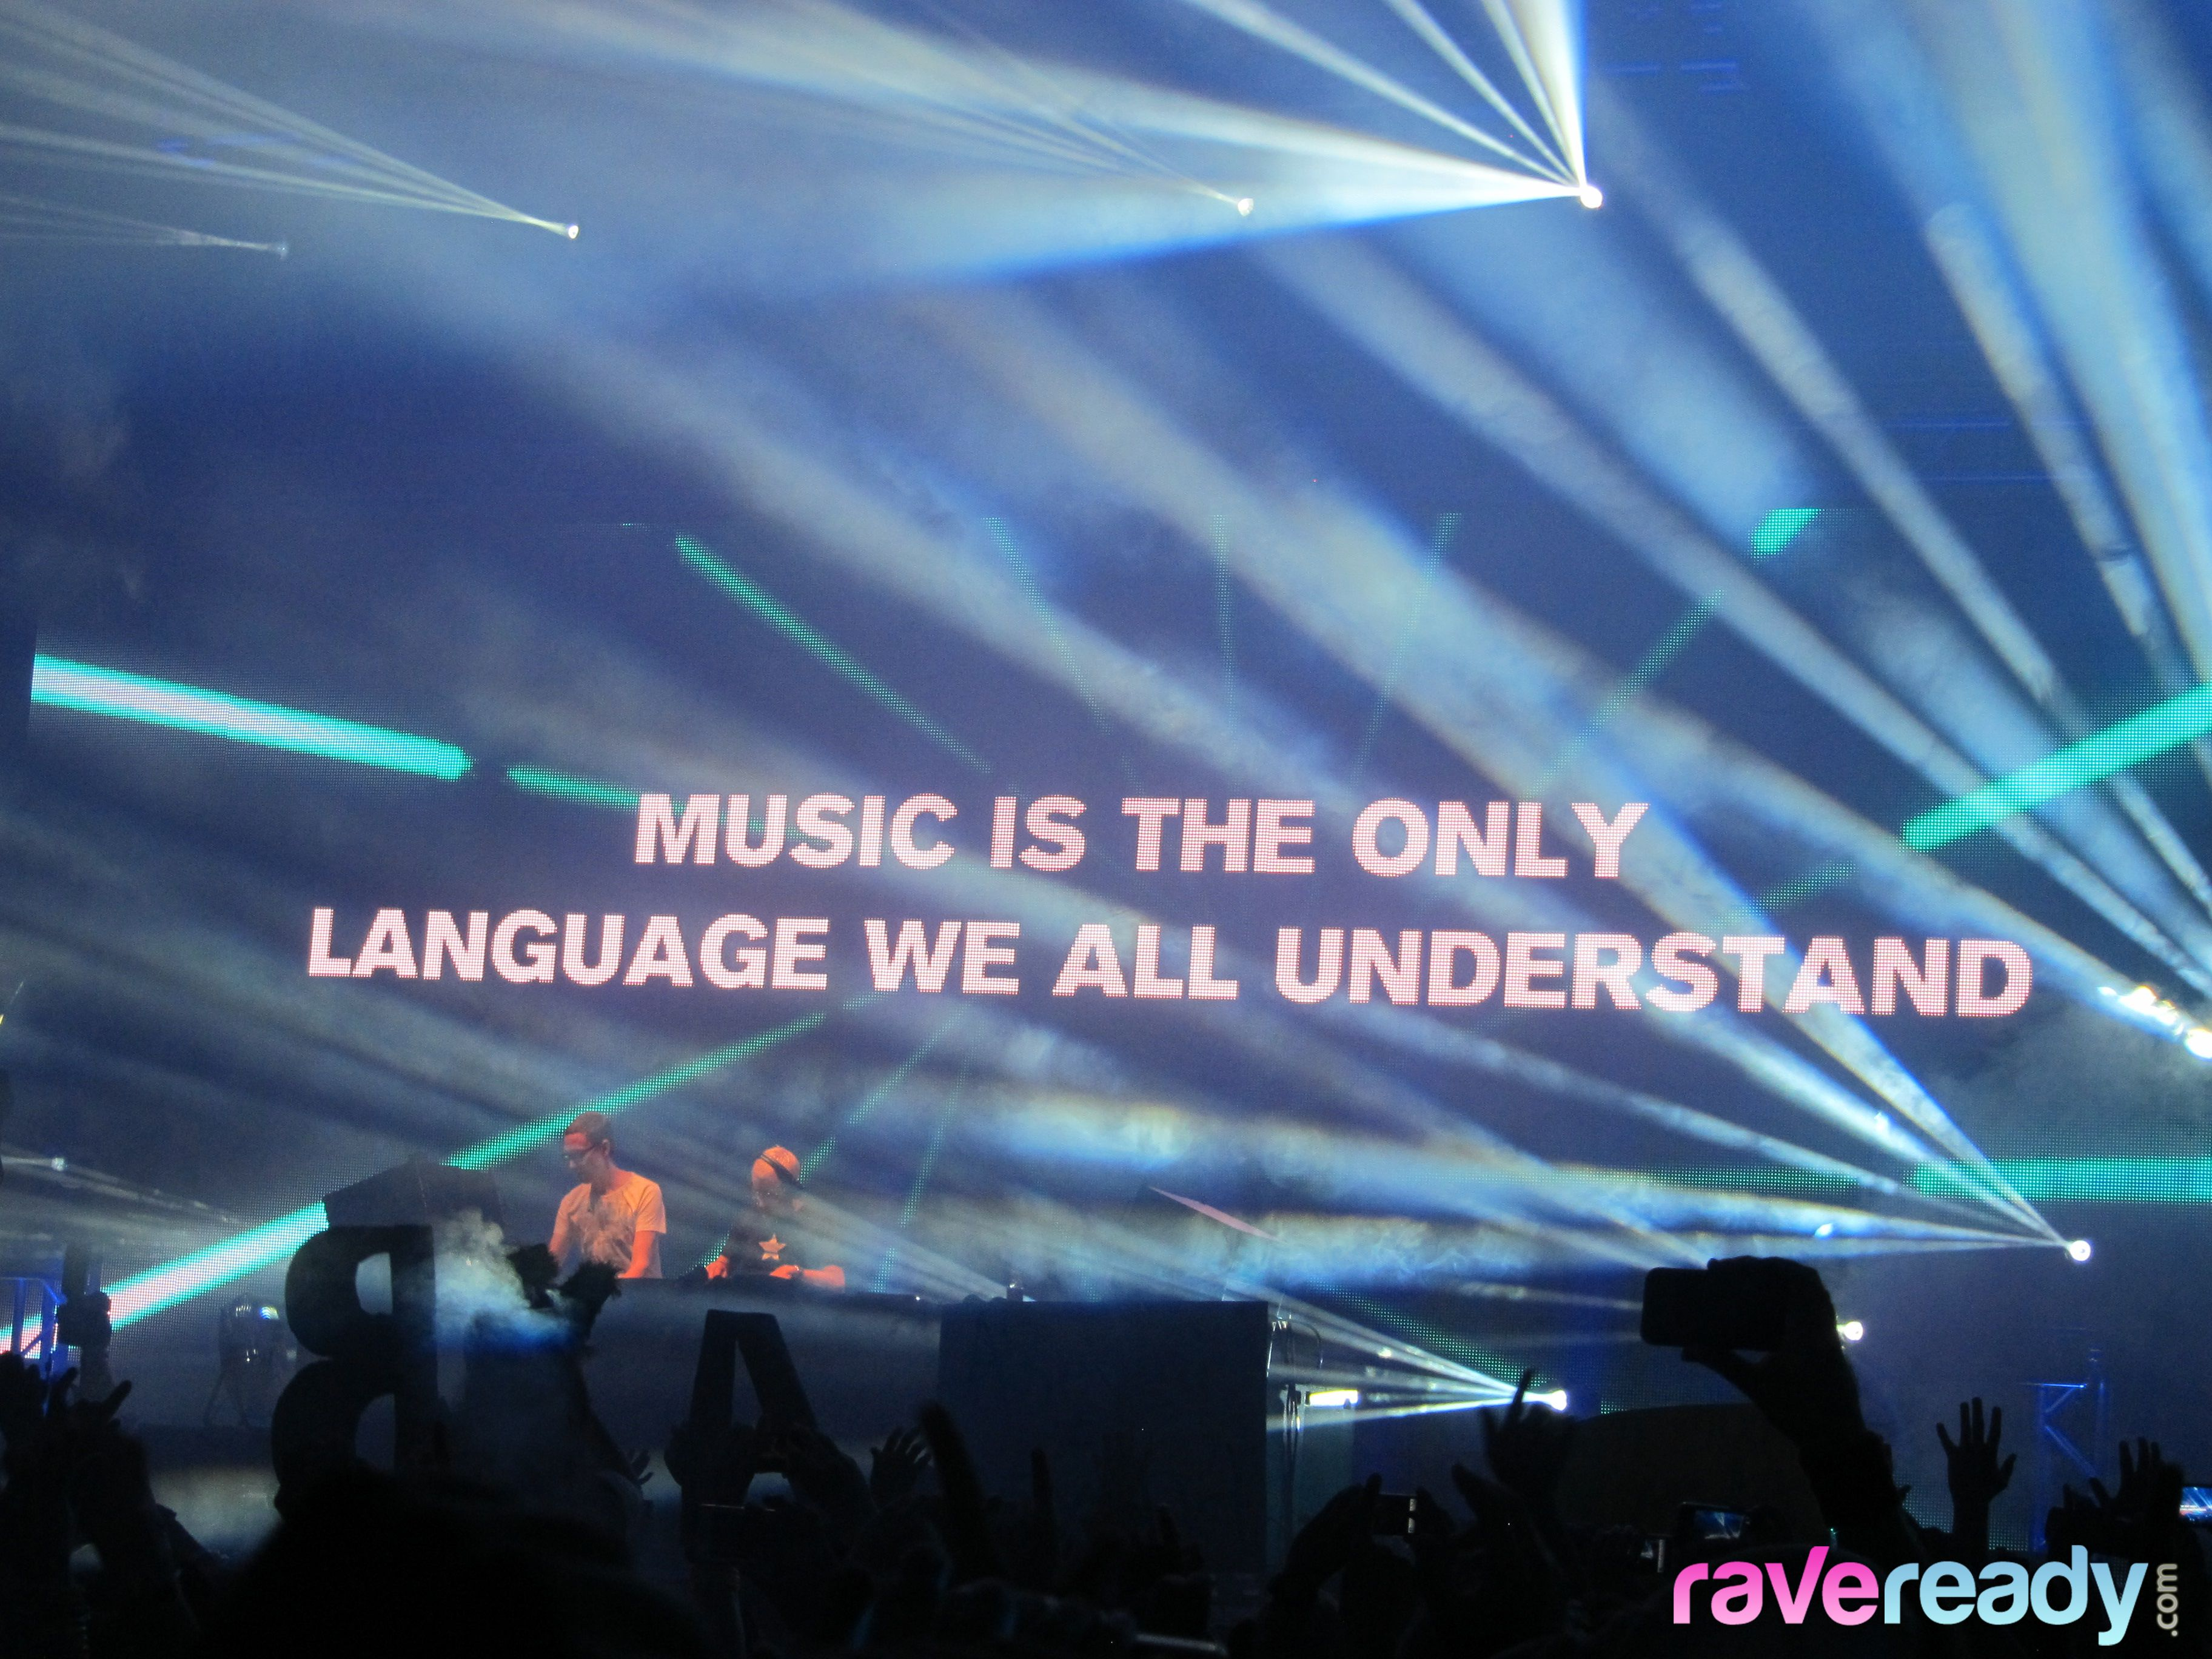 Music is the only language we all understand.